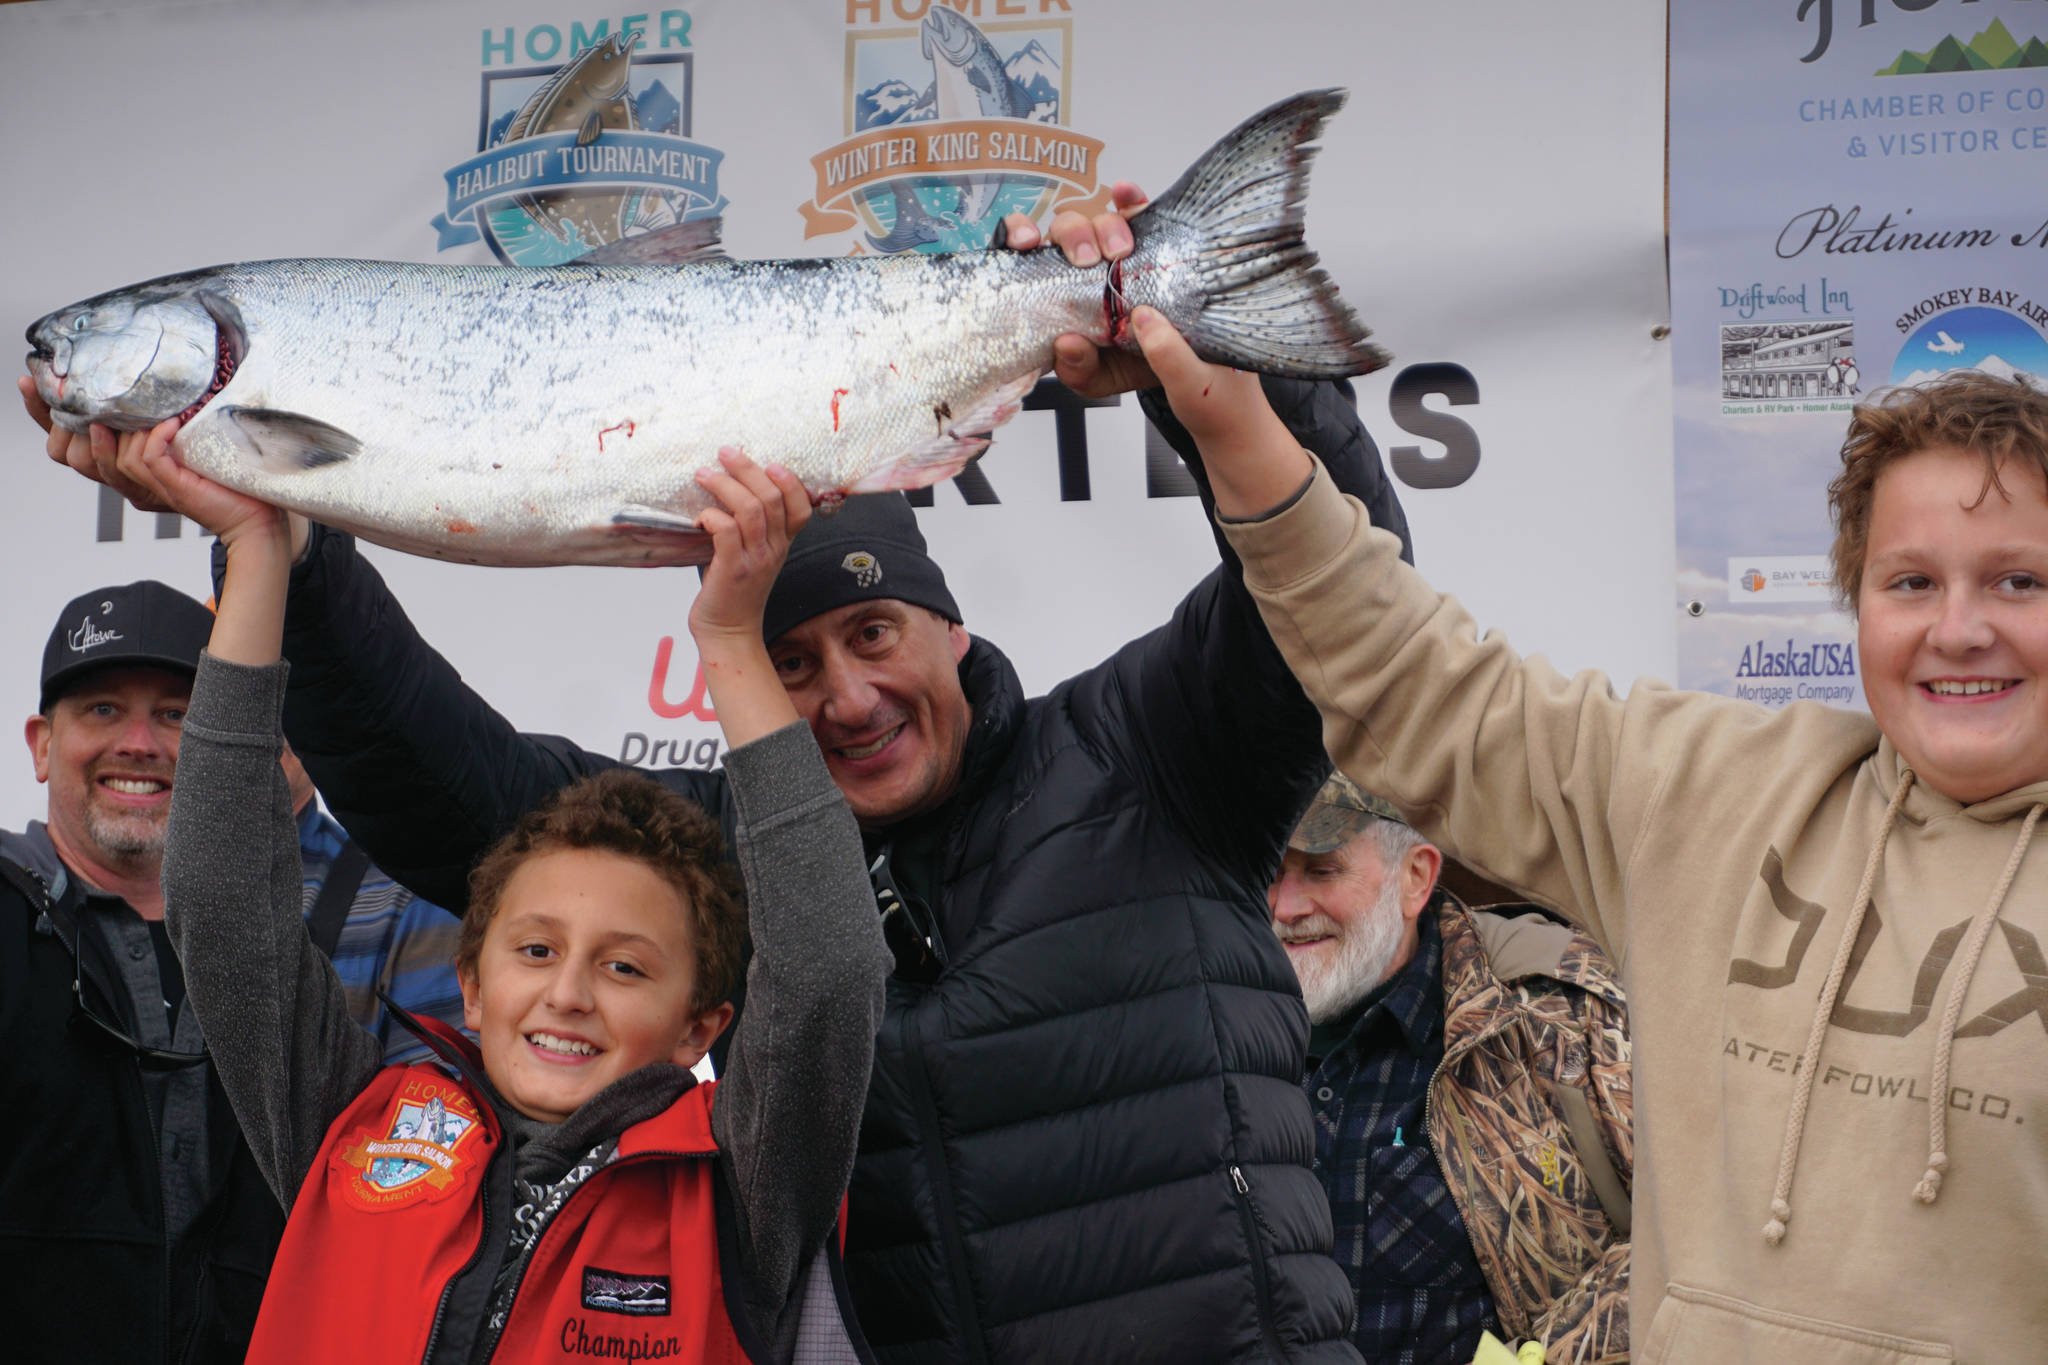 Andrew Marley, the 2021 Homer Winter King Salmon Tournament winner, at left, holds his prize winning 25.62-pound white king salmon on Saturday, April 17, 2021, on the Homer Spit in Homer, Alaska. Helping him are his father, Jay Marley, center, and older brother Weston Marley, right. The family team included Erica Marley, not shown, all fishing on the Fly Dough. (Photo by Michael Armstrong/Homer News)